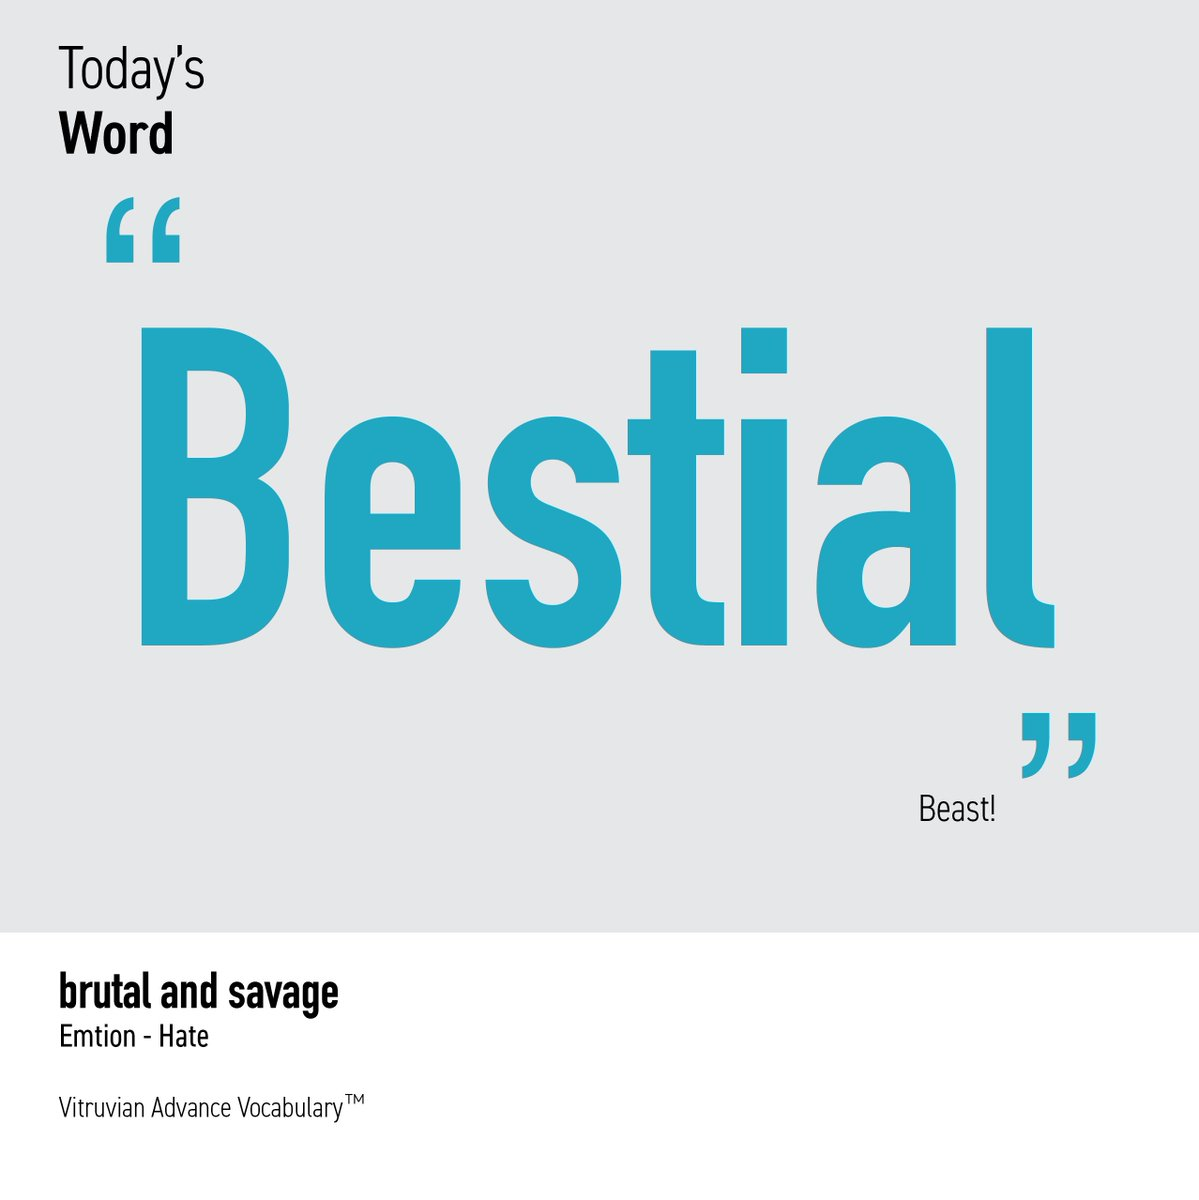 Today's word 'bestial' : savagely cruel and depraved. Vitruvian Advance Vocabulary is based on innovative relational matrix and visualized vocabulary learning. #Englishteacher #English #EnglishVocabulary #visuallearning #Vocabulary #Englishwords #ACT #SATprep #englishwriting pic.twitter.com/uRTpBHnlSk